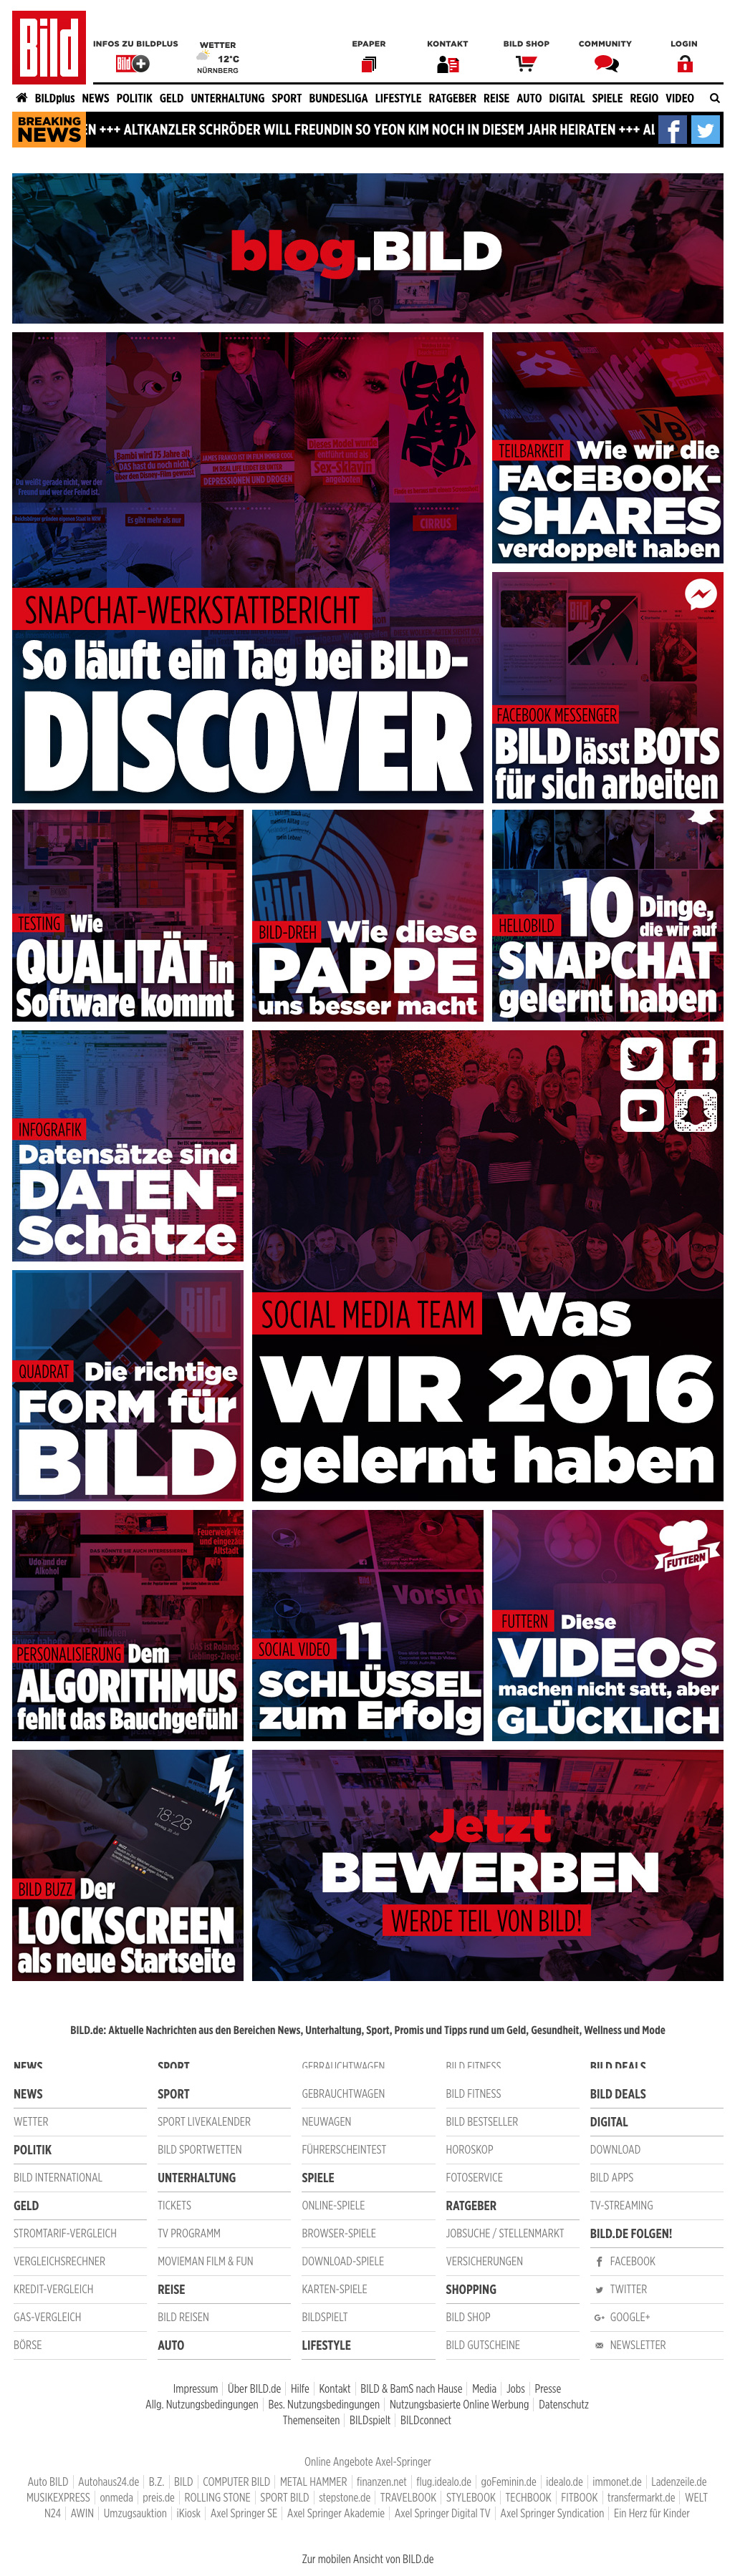 BILD Corporate Blog Screenshot